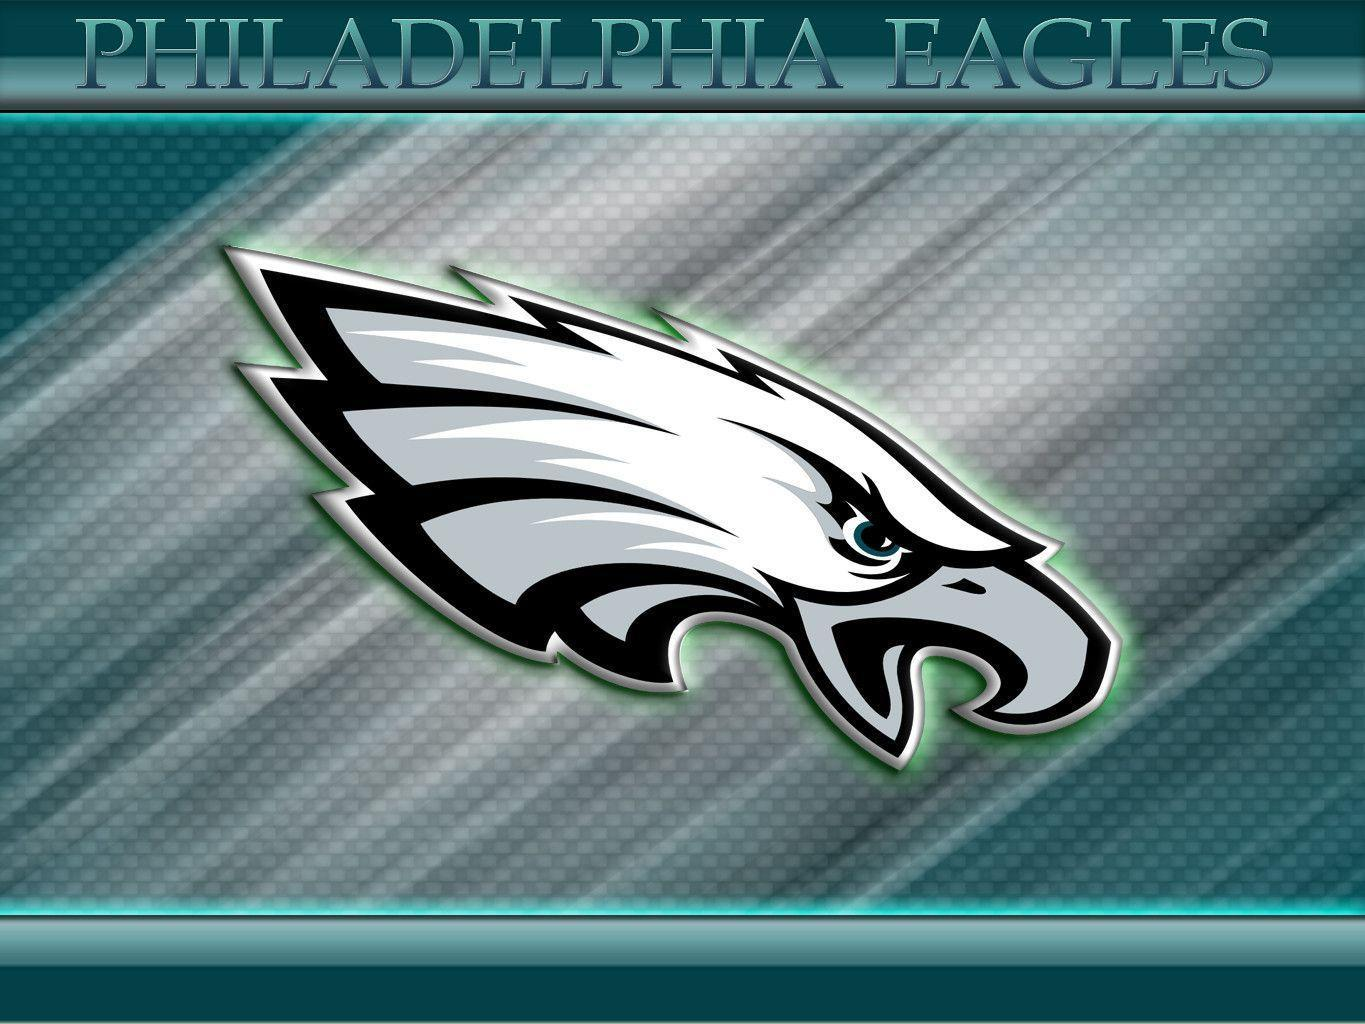 Enchanting Eagles Logo Wallpapers 1365x1024PX ~ Exciting